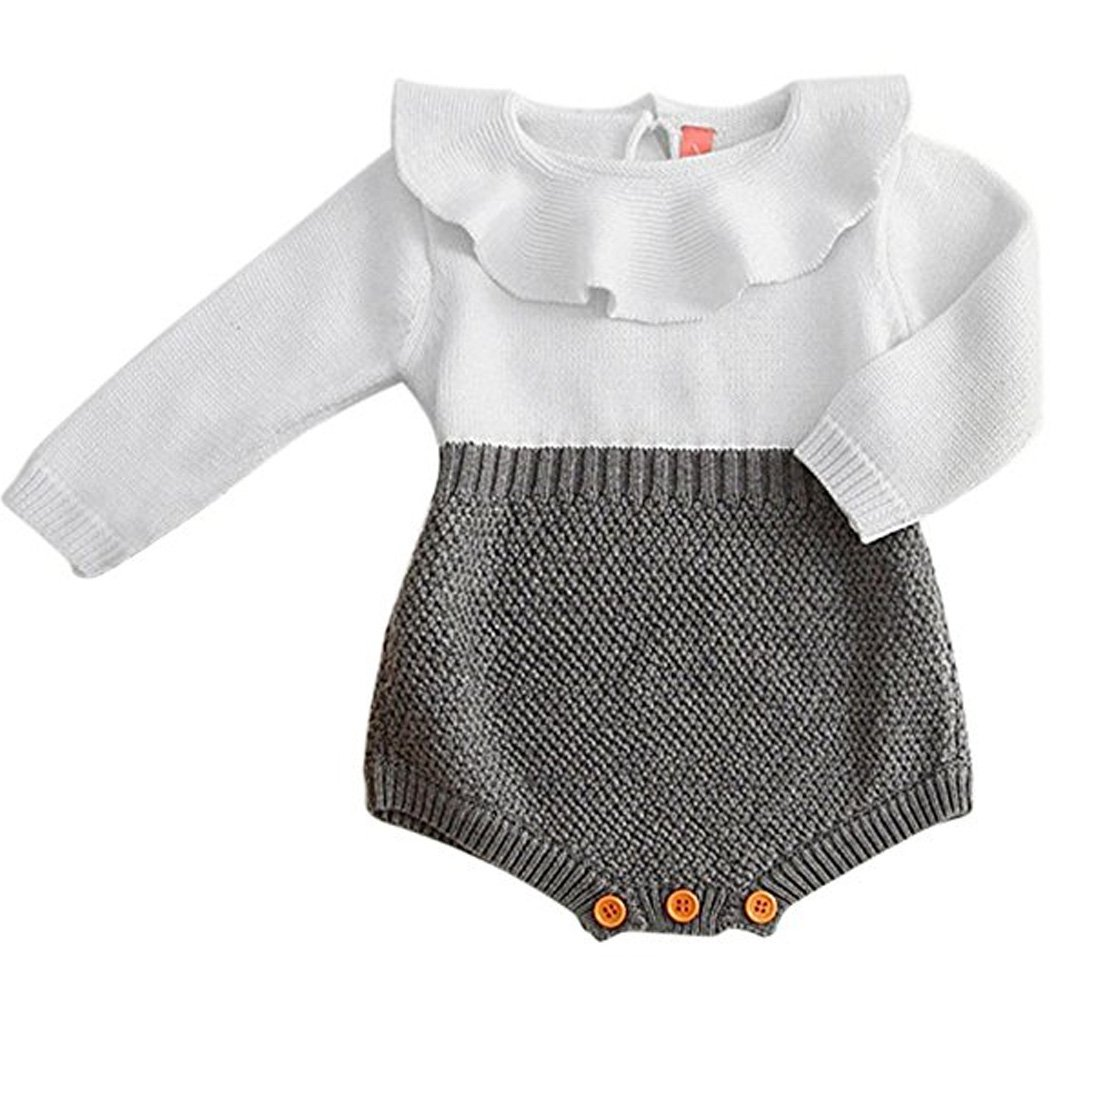 ddd06f9cc Amazon.com: HAPPYMA Toddler Baby Girl Knitted Doll Collar Long Sleeve  Bodysuit Romper Jumpsuit Outfits Autumn Winter Casual Clothing (9-12  Months) Gray: ...